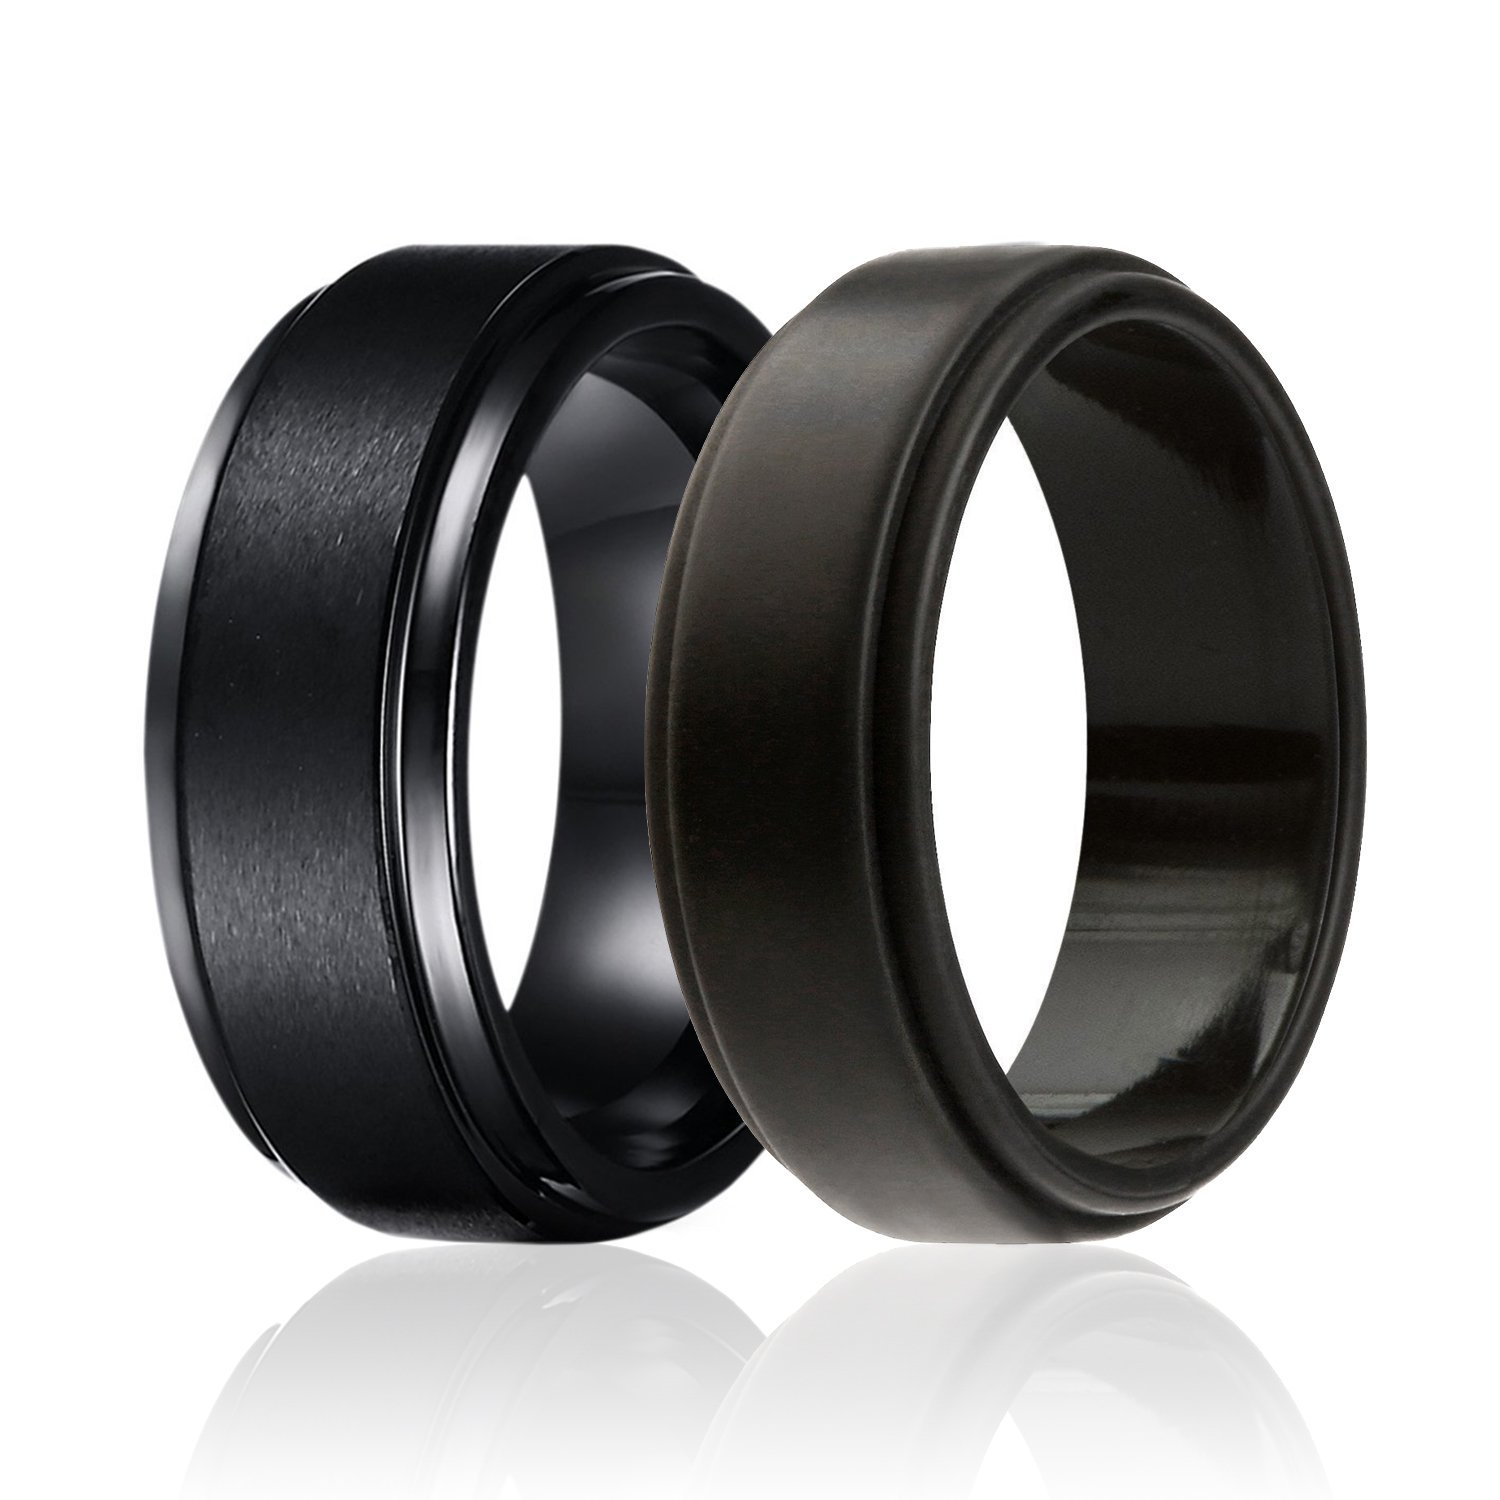 SOLEED Twins - Set of 2-1 Black Tungsten Wedding Band, Brushed Top, Step Edge 1 Black Silicone Rubber Wedding Ring Men, 8mm, Size 14